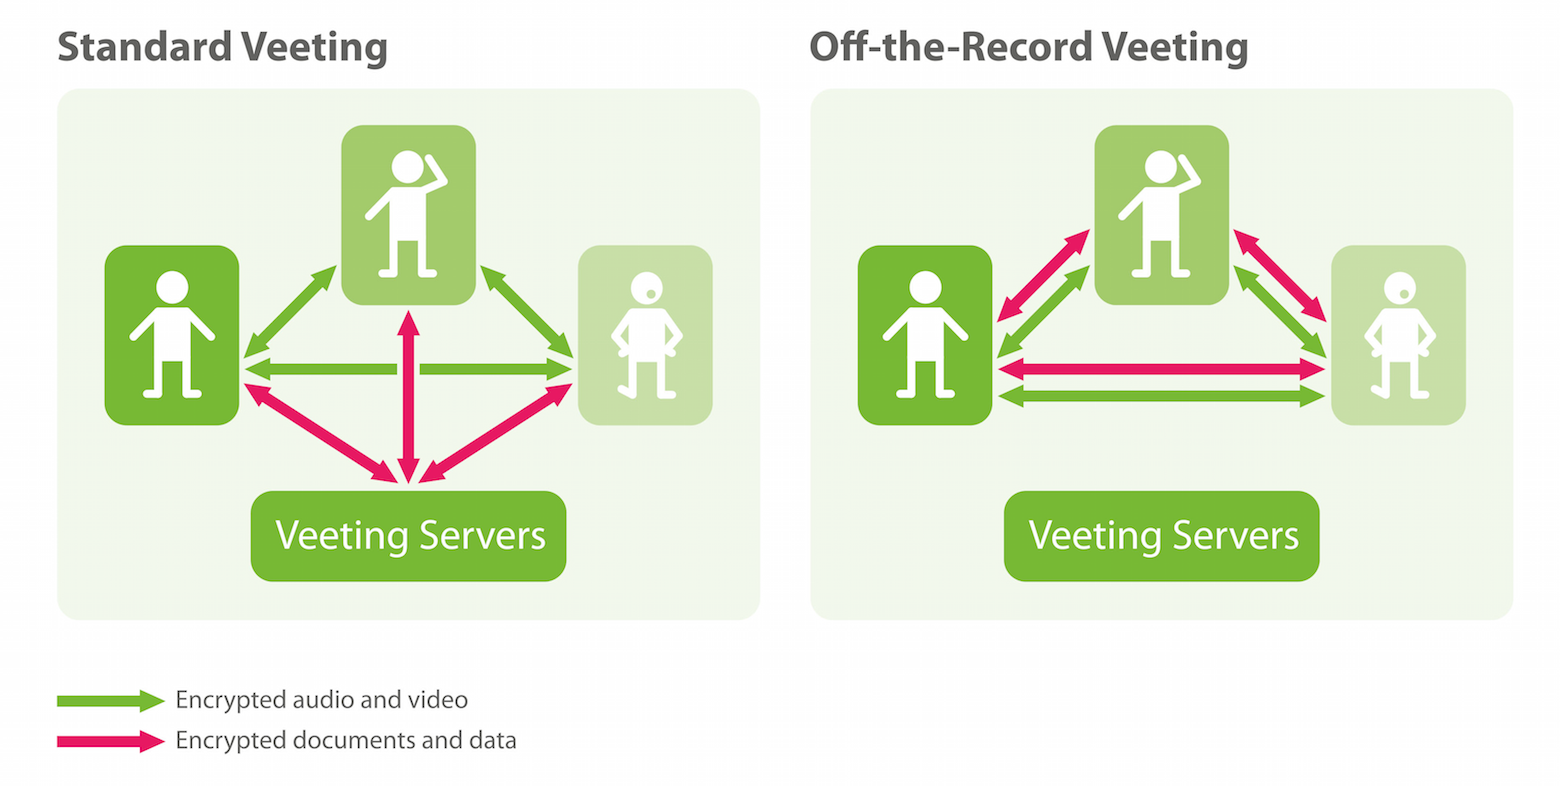 'Off-the-Record' Veetings